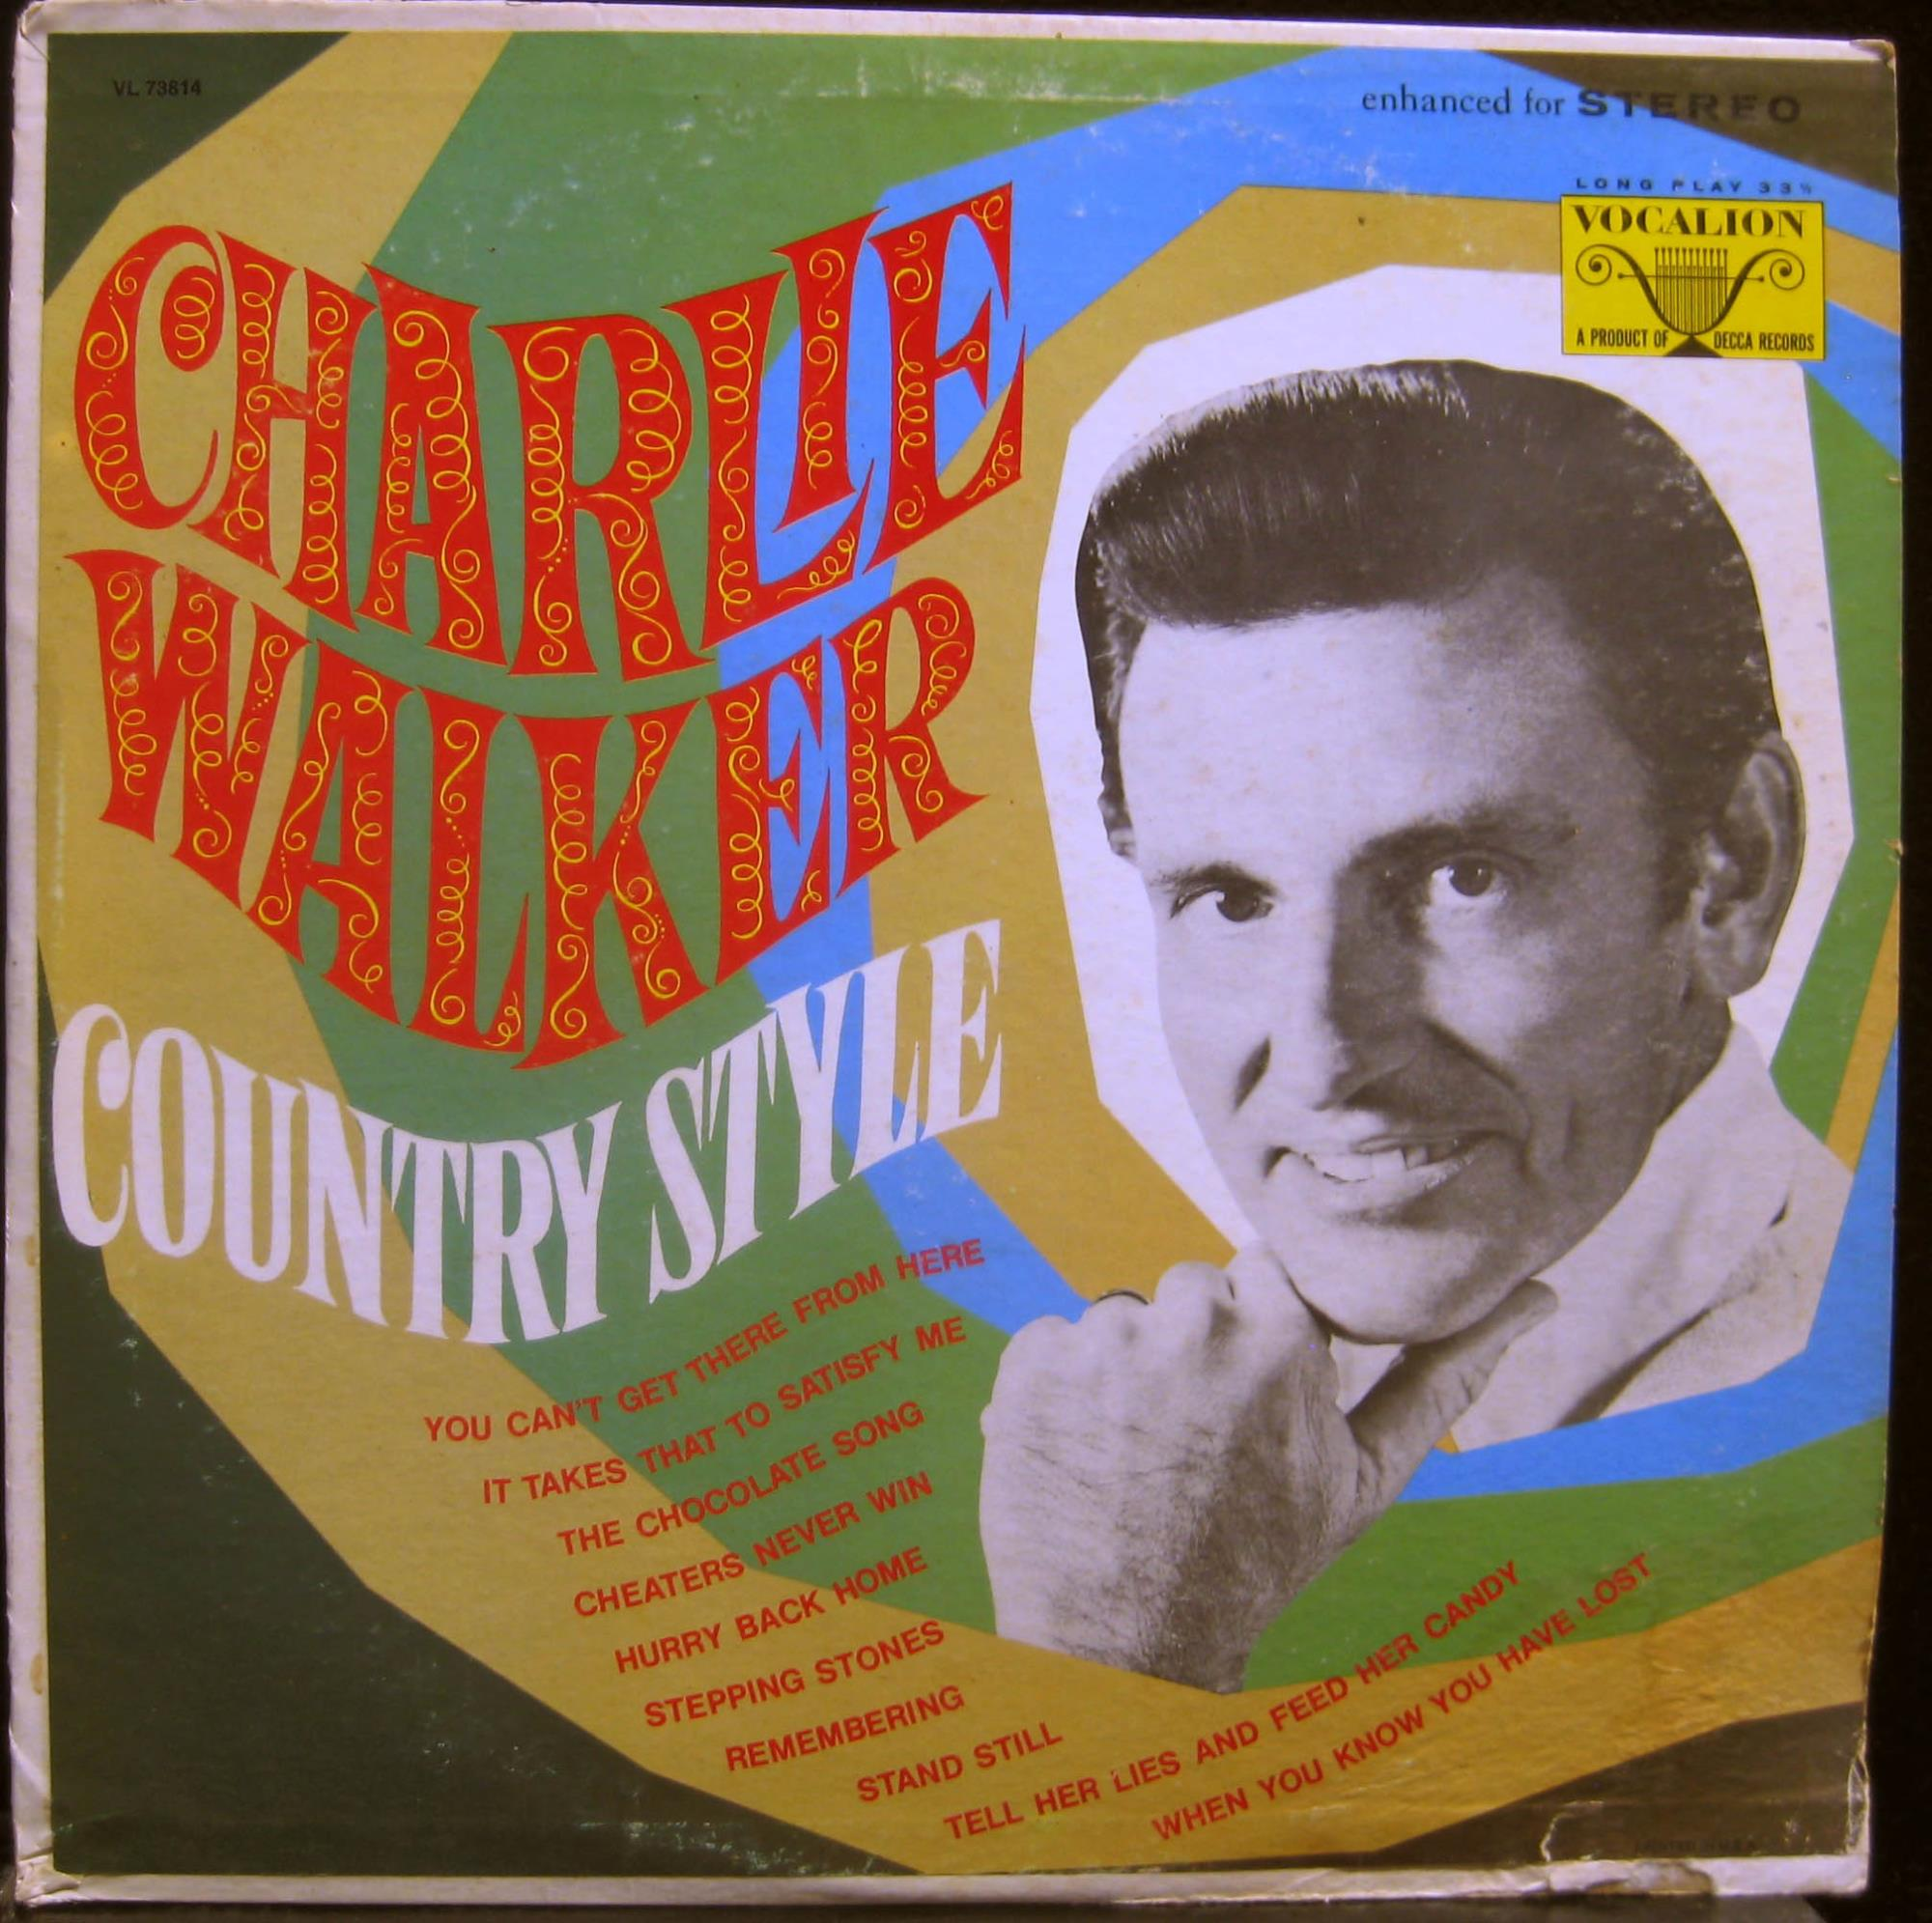 CHARLIE WALKER - Charlie Walker Country Style Lp Vg Vl 73814 Vinyl Record (country Style)